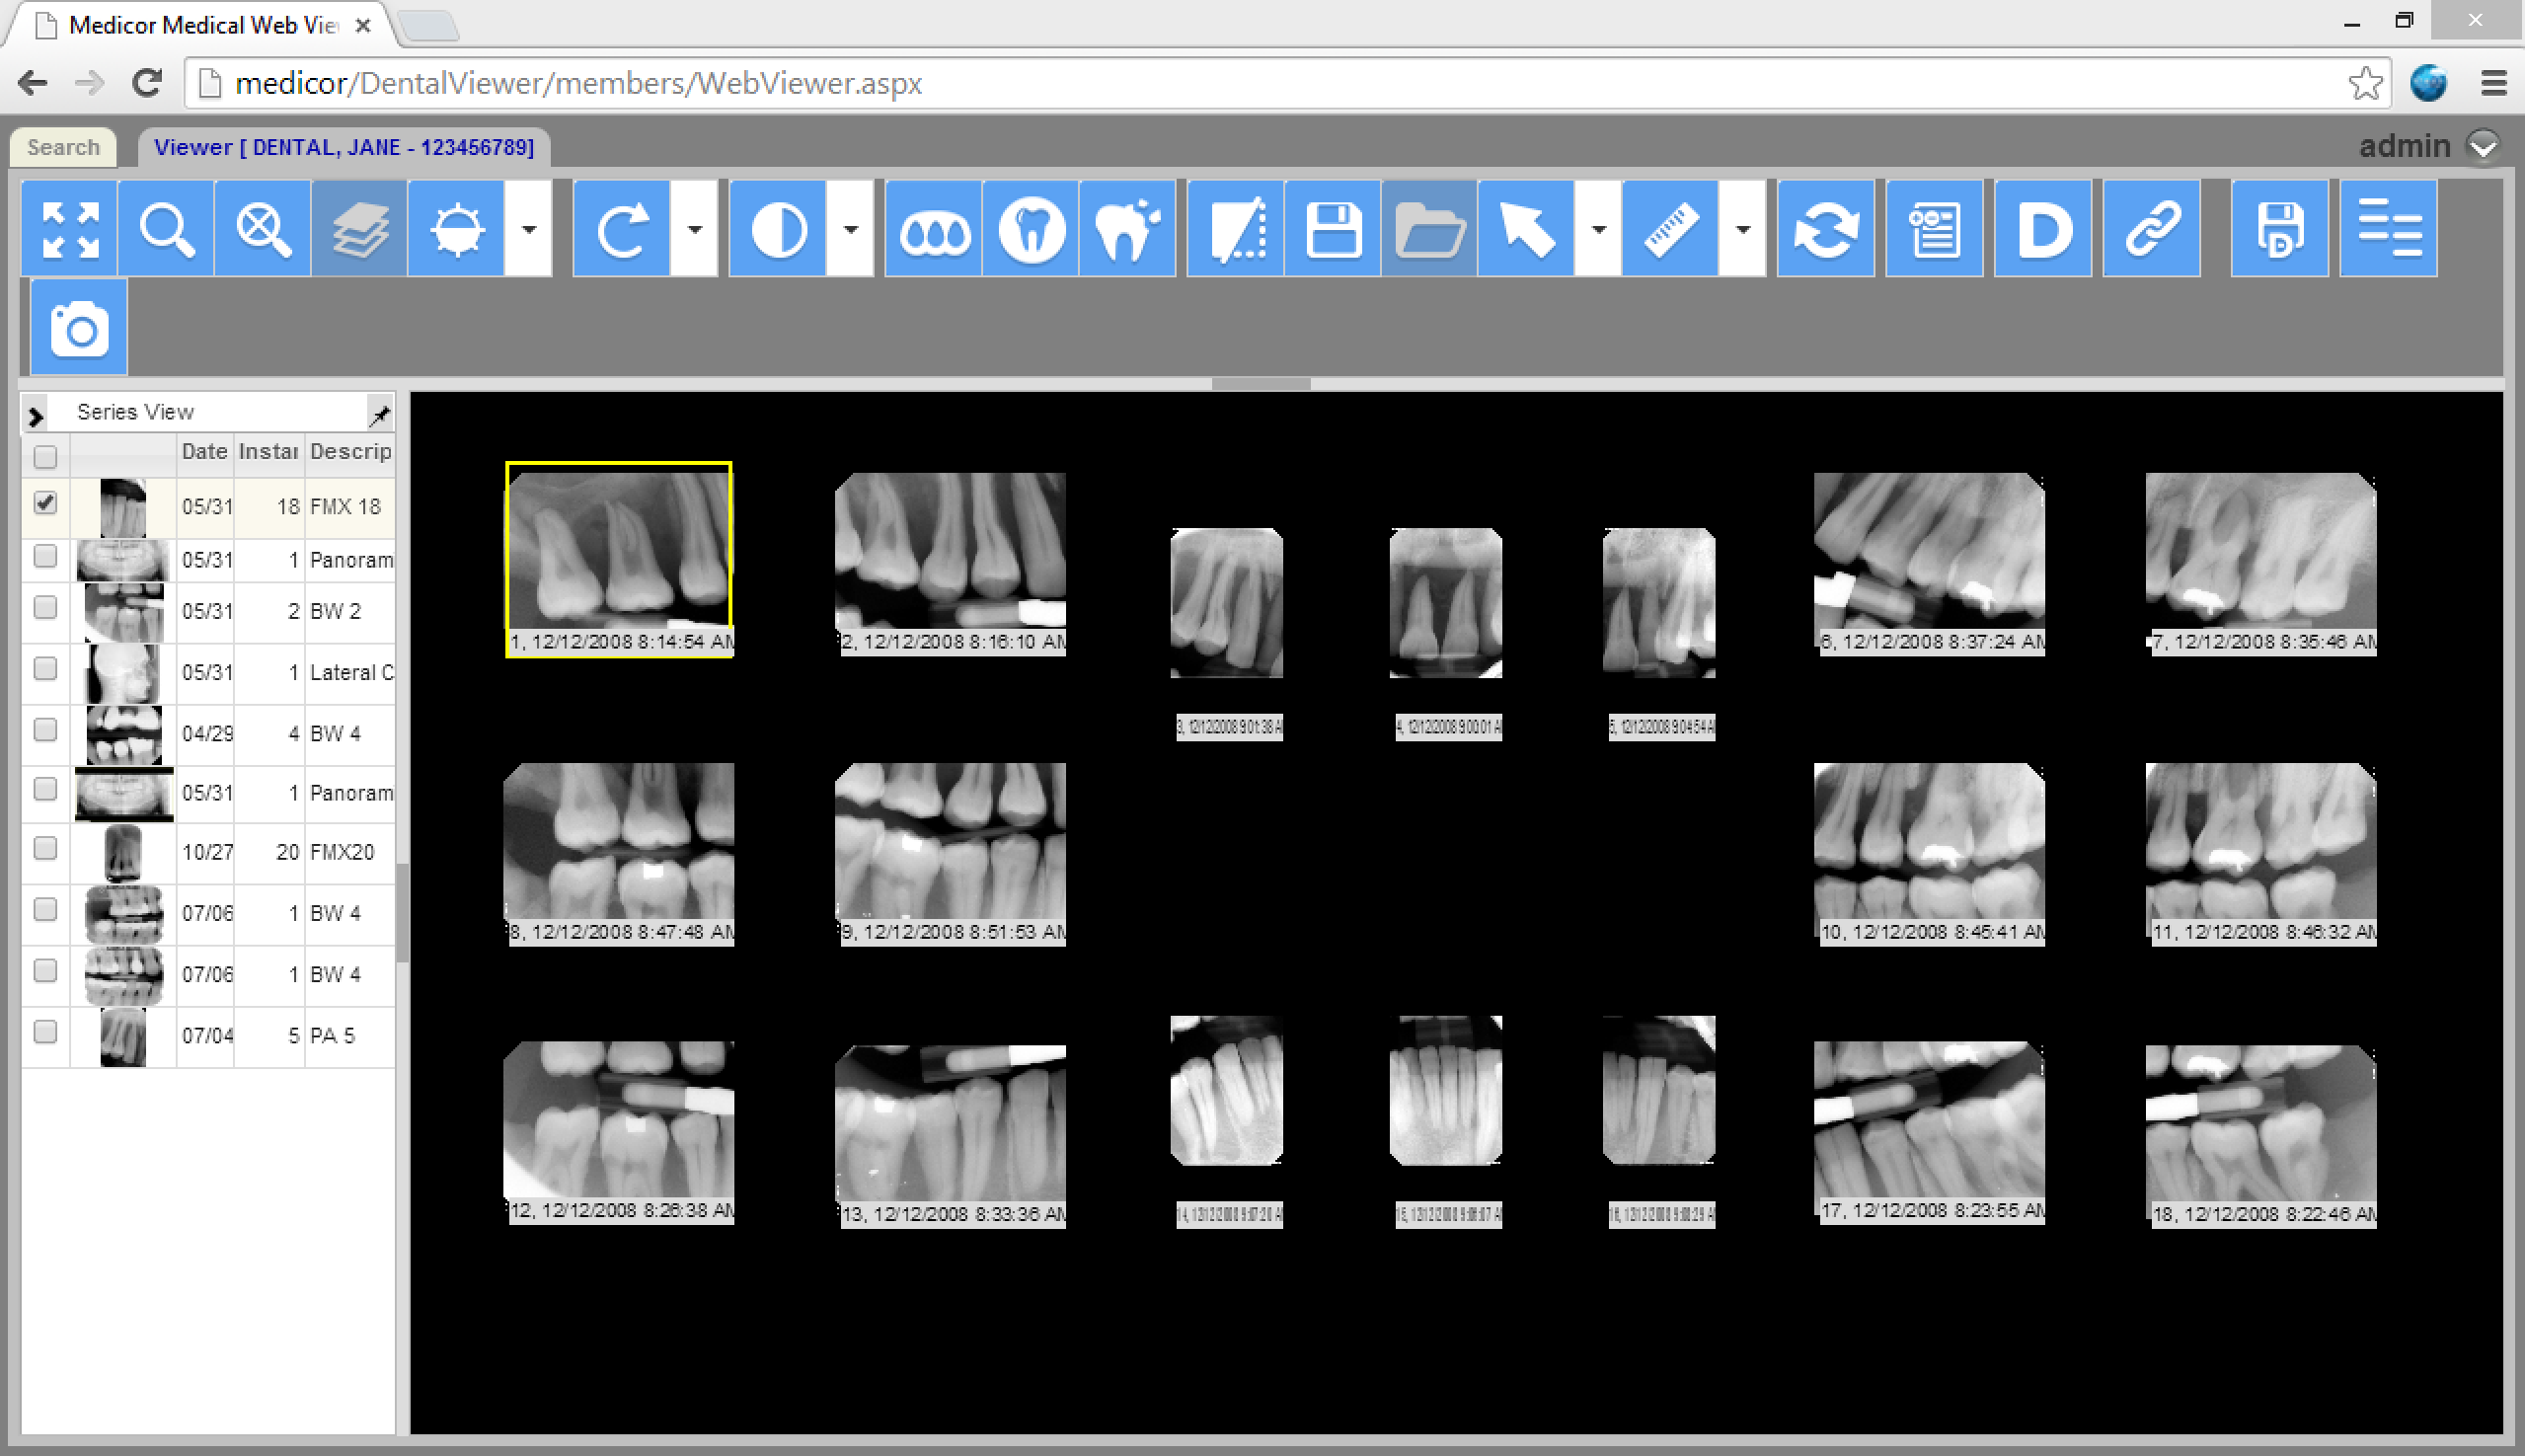 MiPACS HTML5 Web Viewer - Medicor Imaging